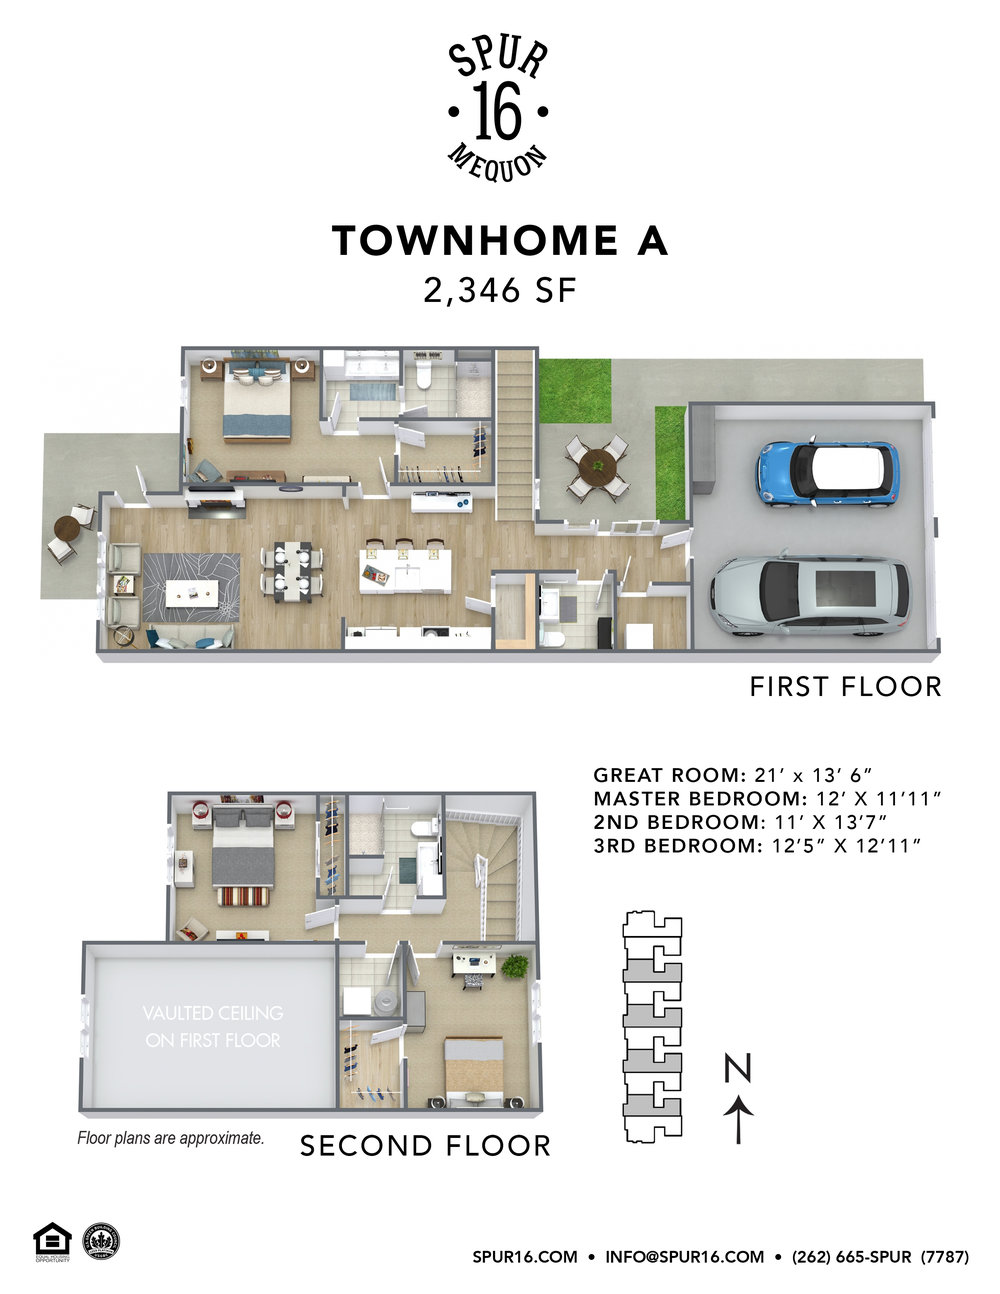 3D Floor Plan - Townhome A.jpg